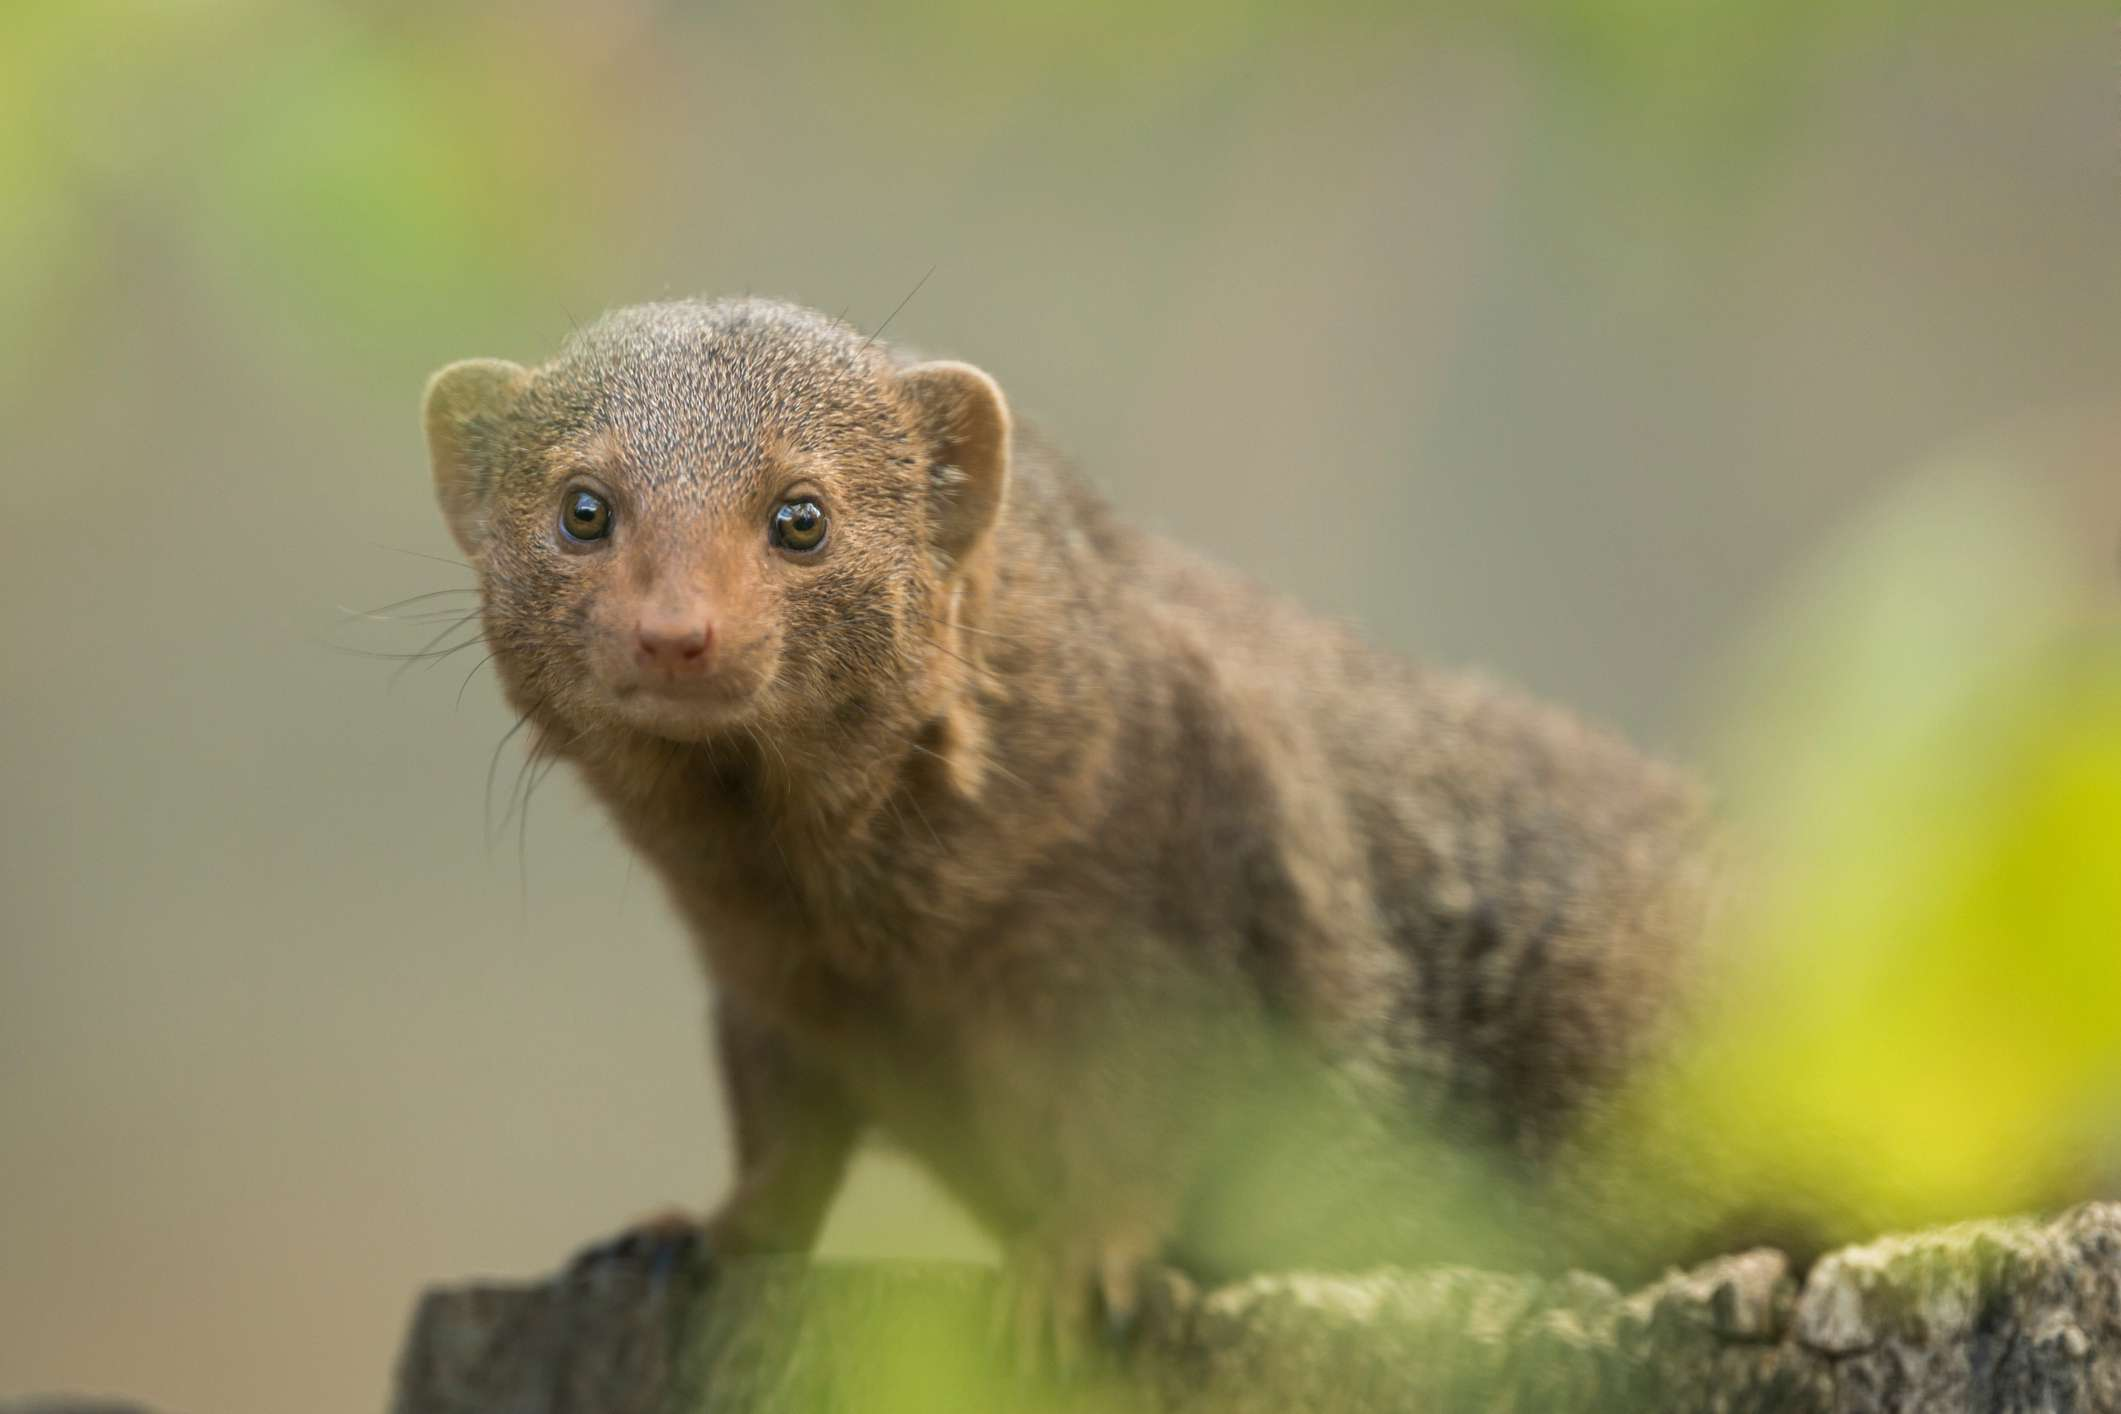 a brown dwarf mongoose on a brown surface